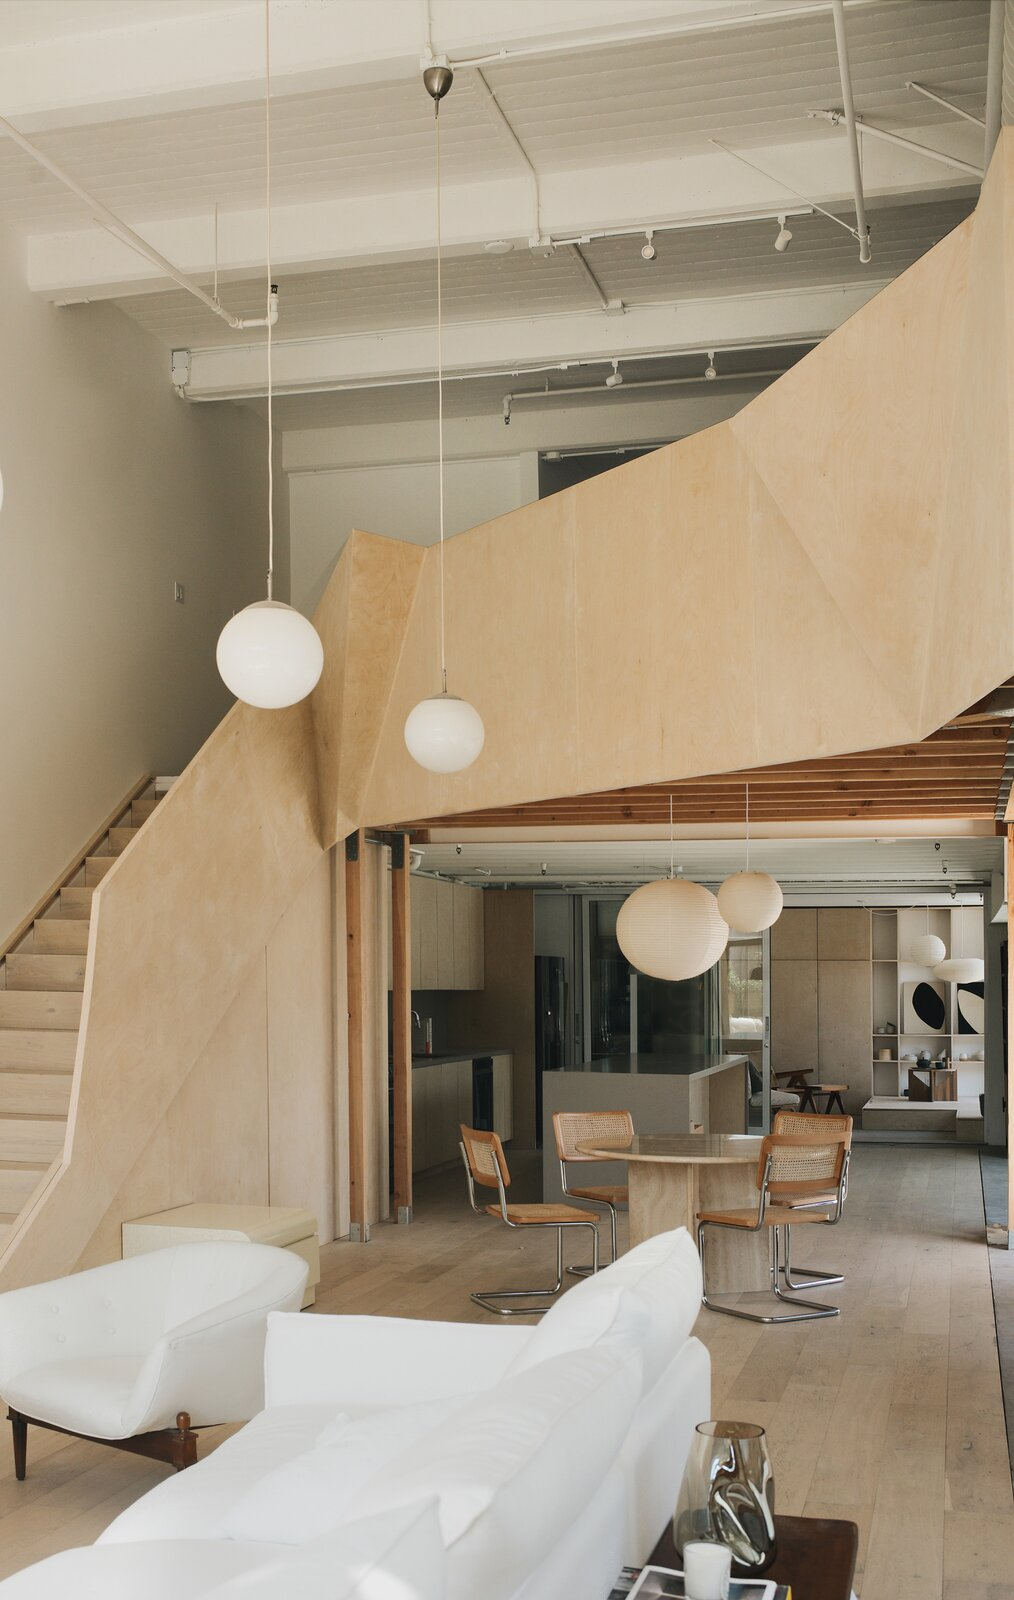 Biscuit Loft by OWIU Design staircase, before and after